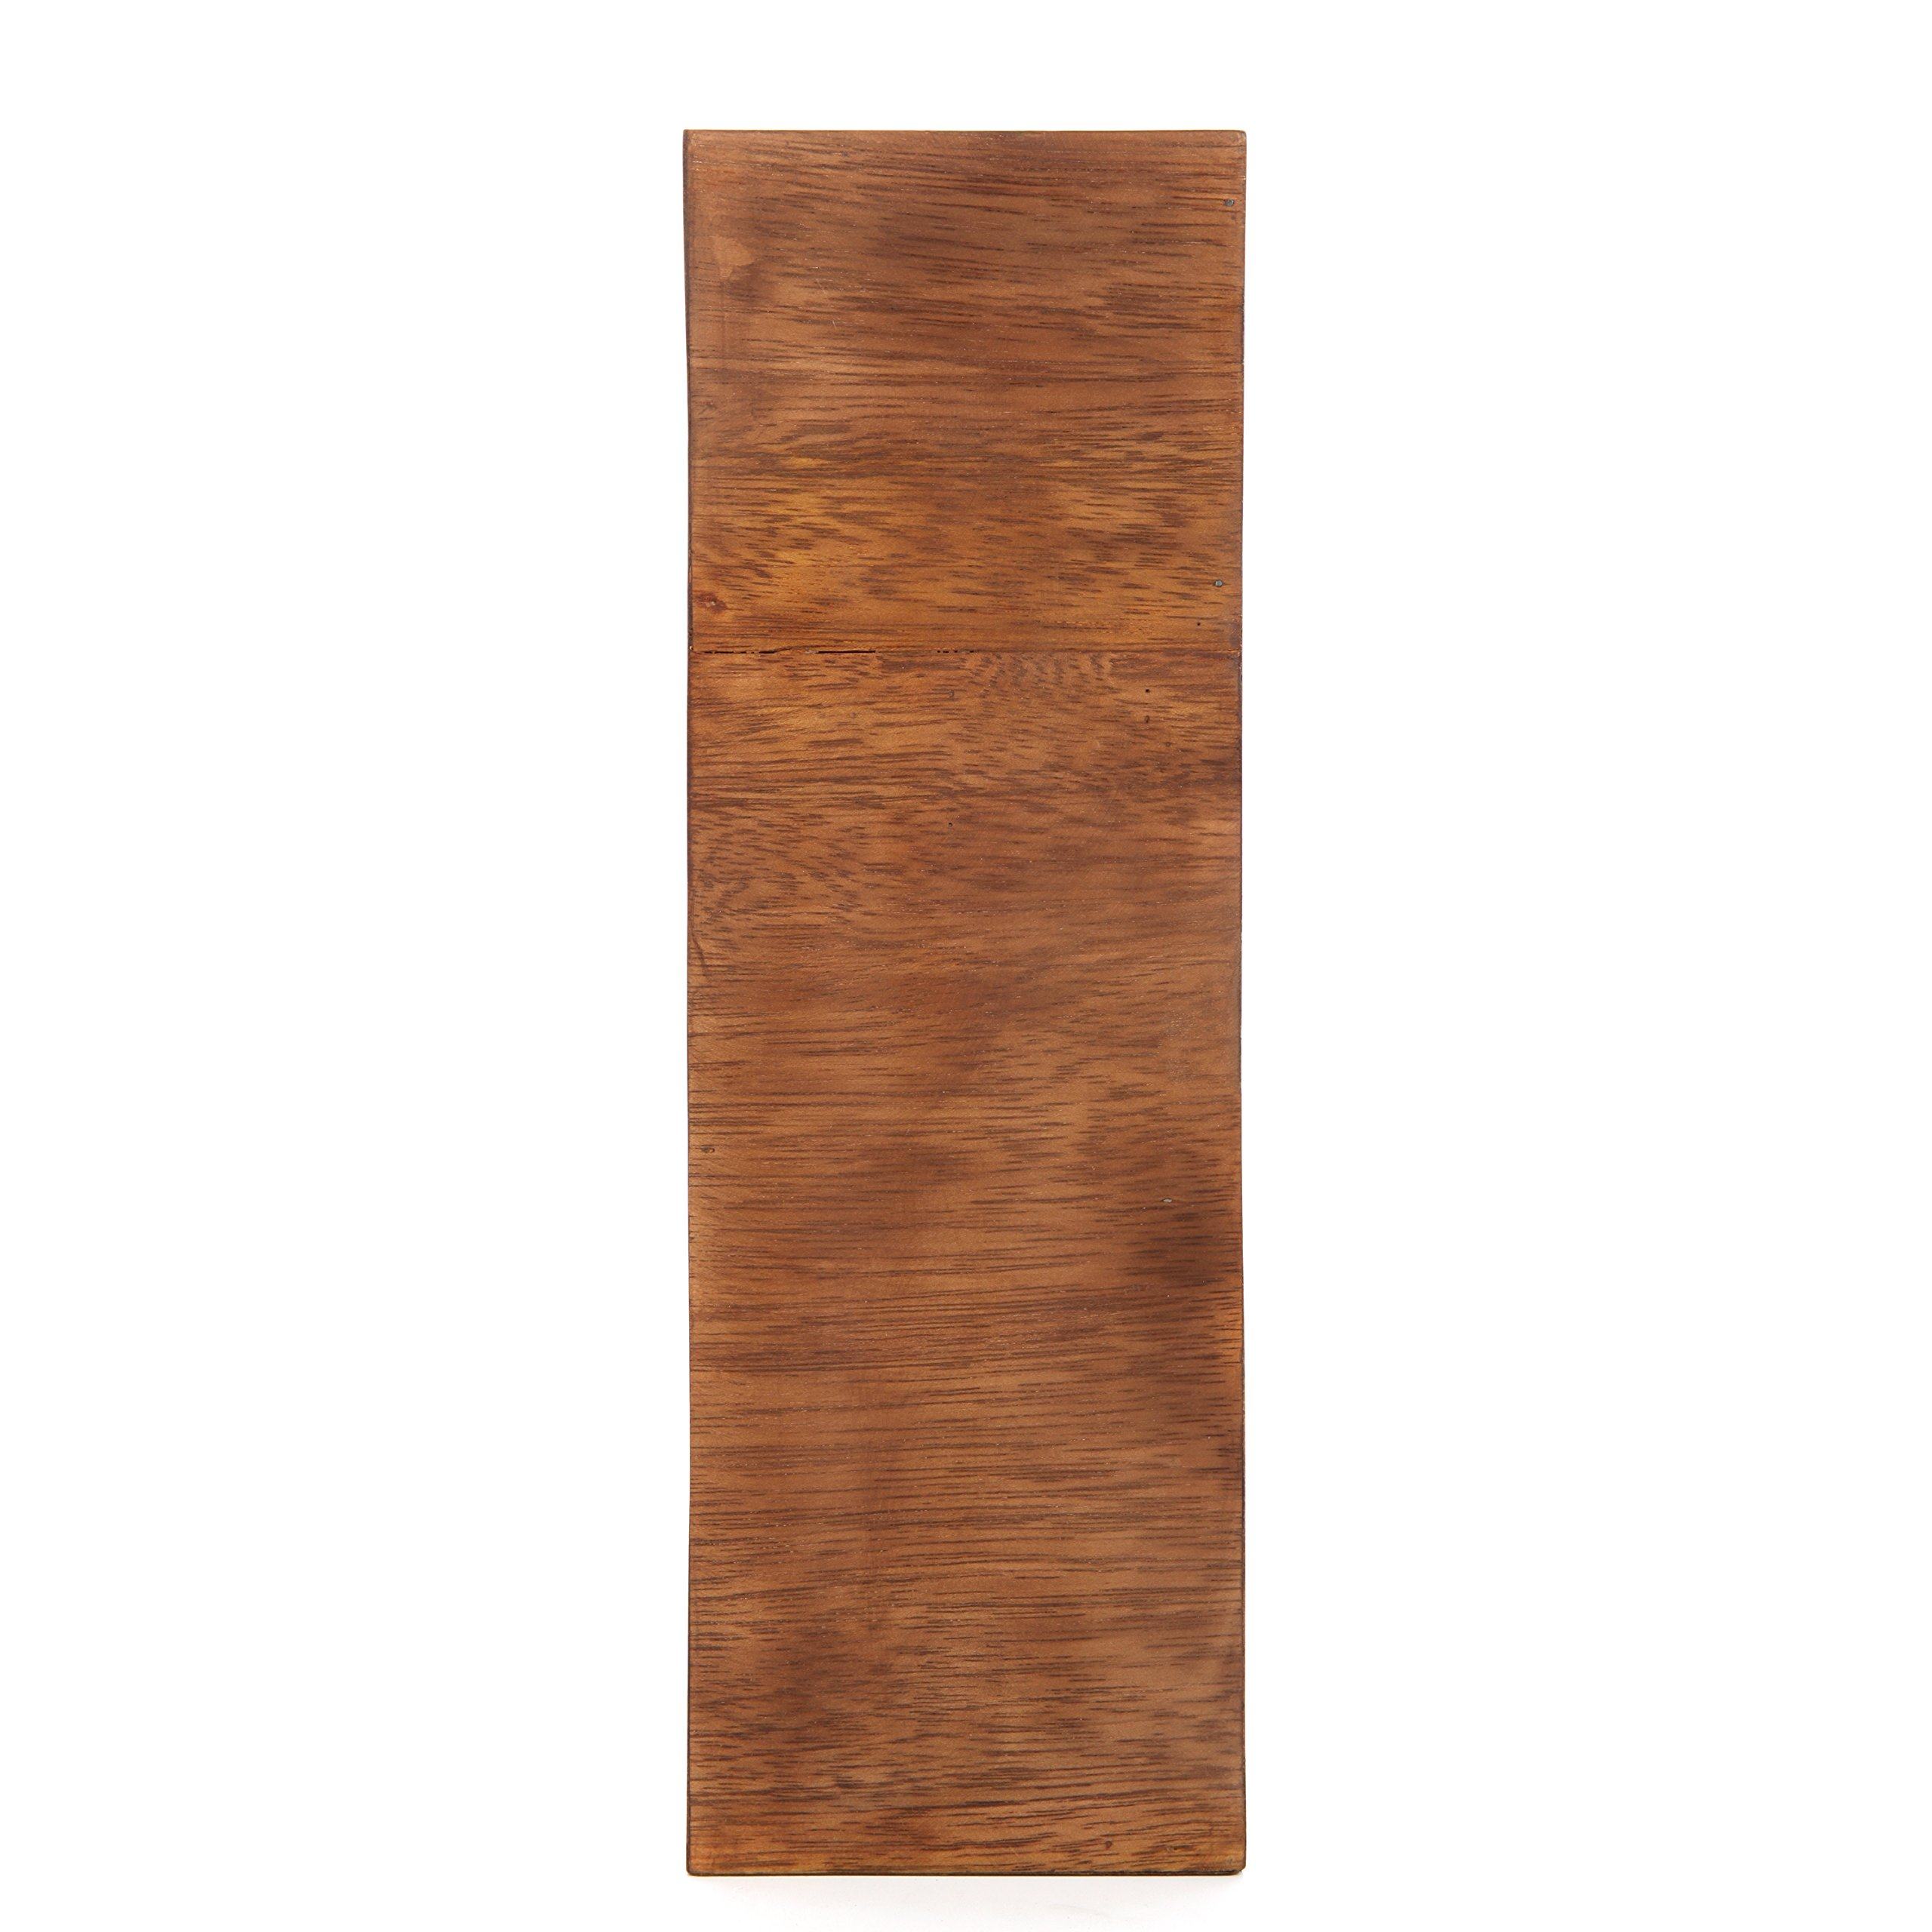 Hosley 16'' High Brown Wood Planter. Ideal for Wedding or Special Occasion; for Dried Floral Arrangements P2